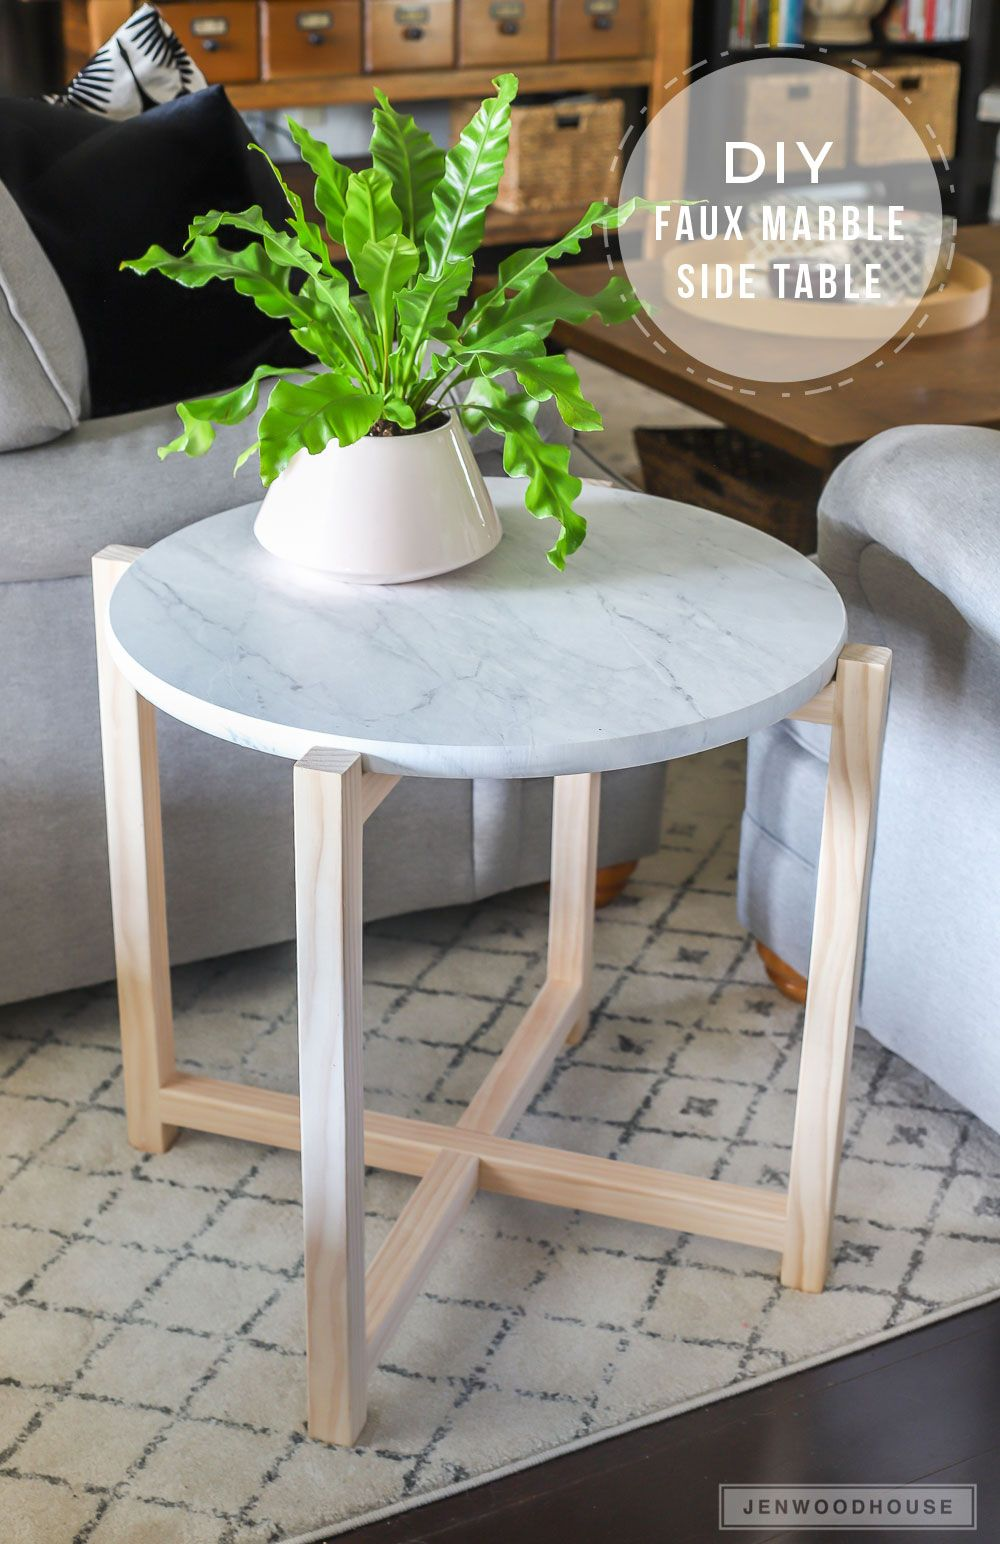 How To Build A Round Faux Marble Side Table Diy Side Table Marble Side Tables Marble Side Table Round